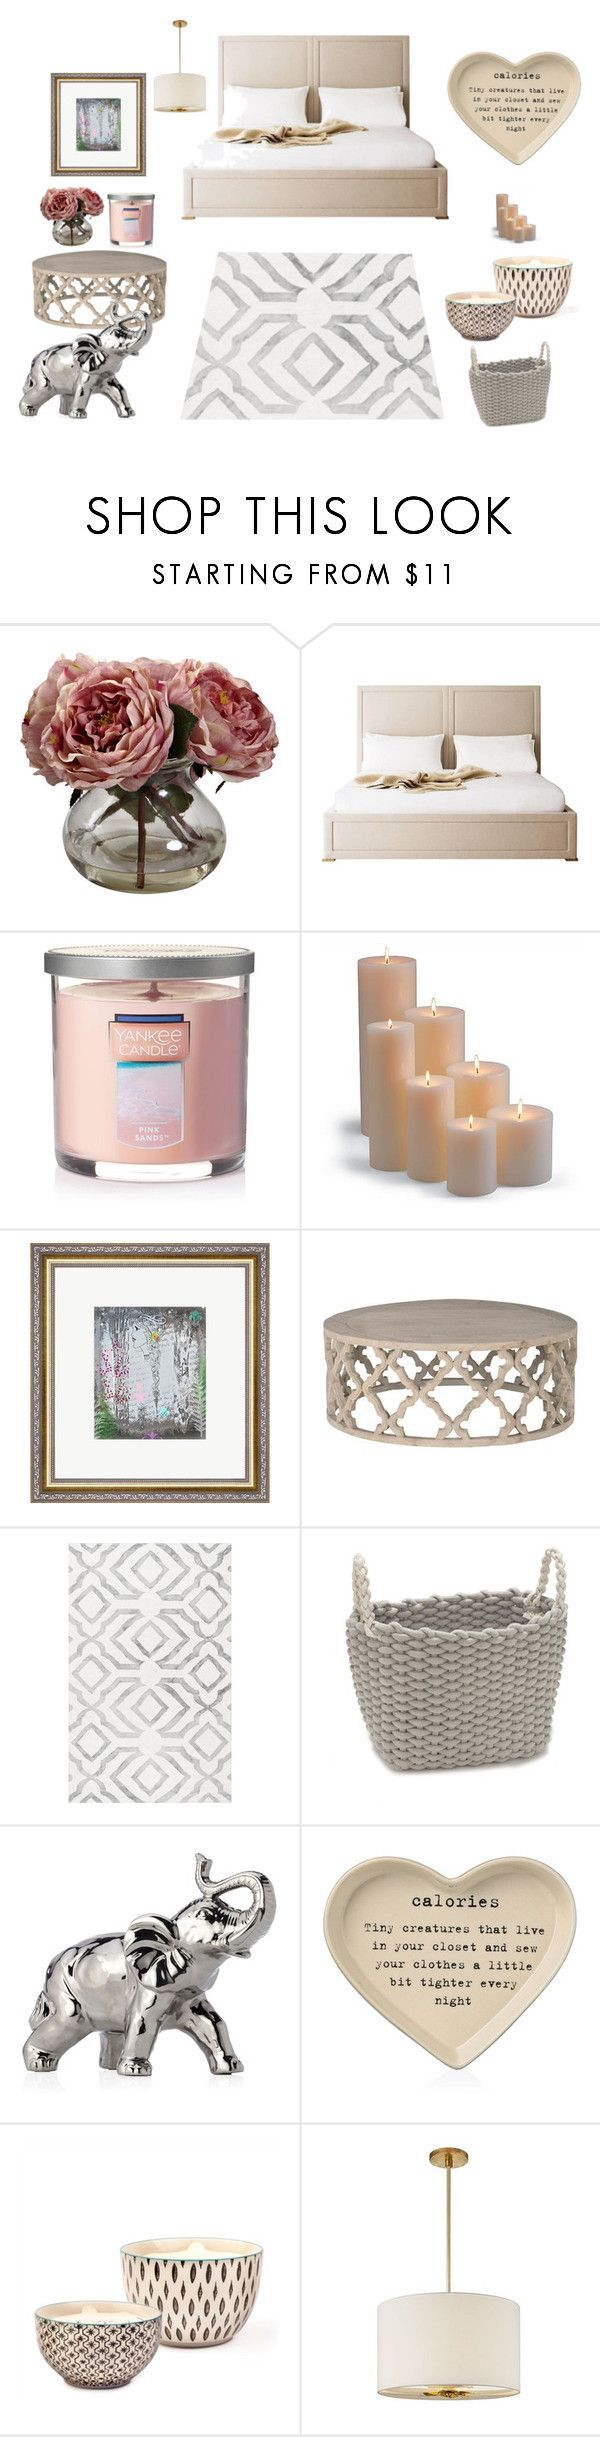 """Bedroom #2"" by kescg ❤ liked on Polyvore featuring interior, interiors, interior design, home, home decor, interior decorating, Nearly Natural, Yankee Candle, Frontgate and Gray Manor"